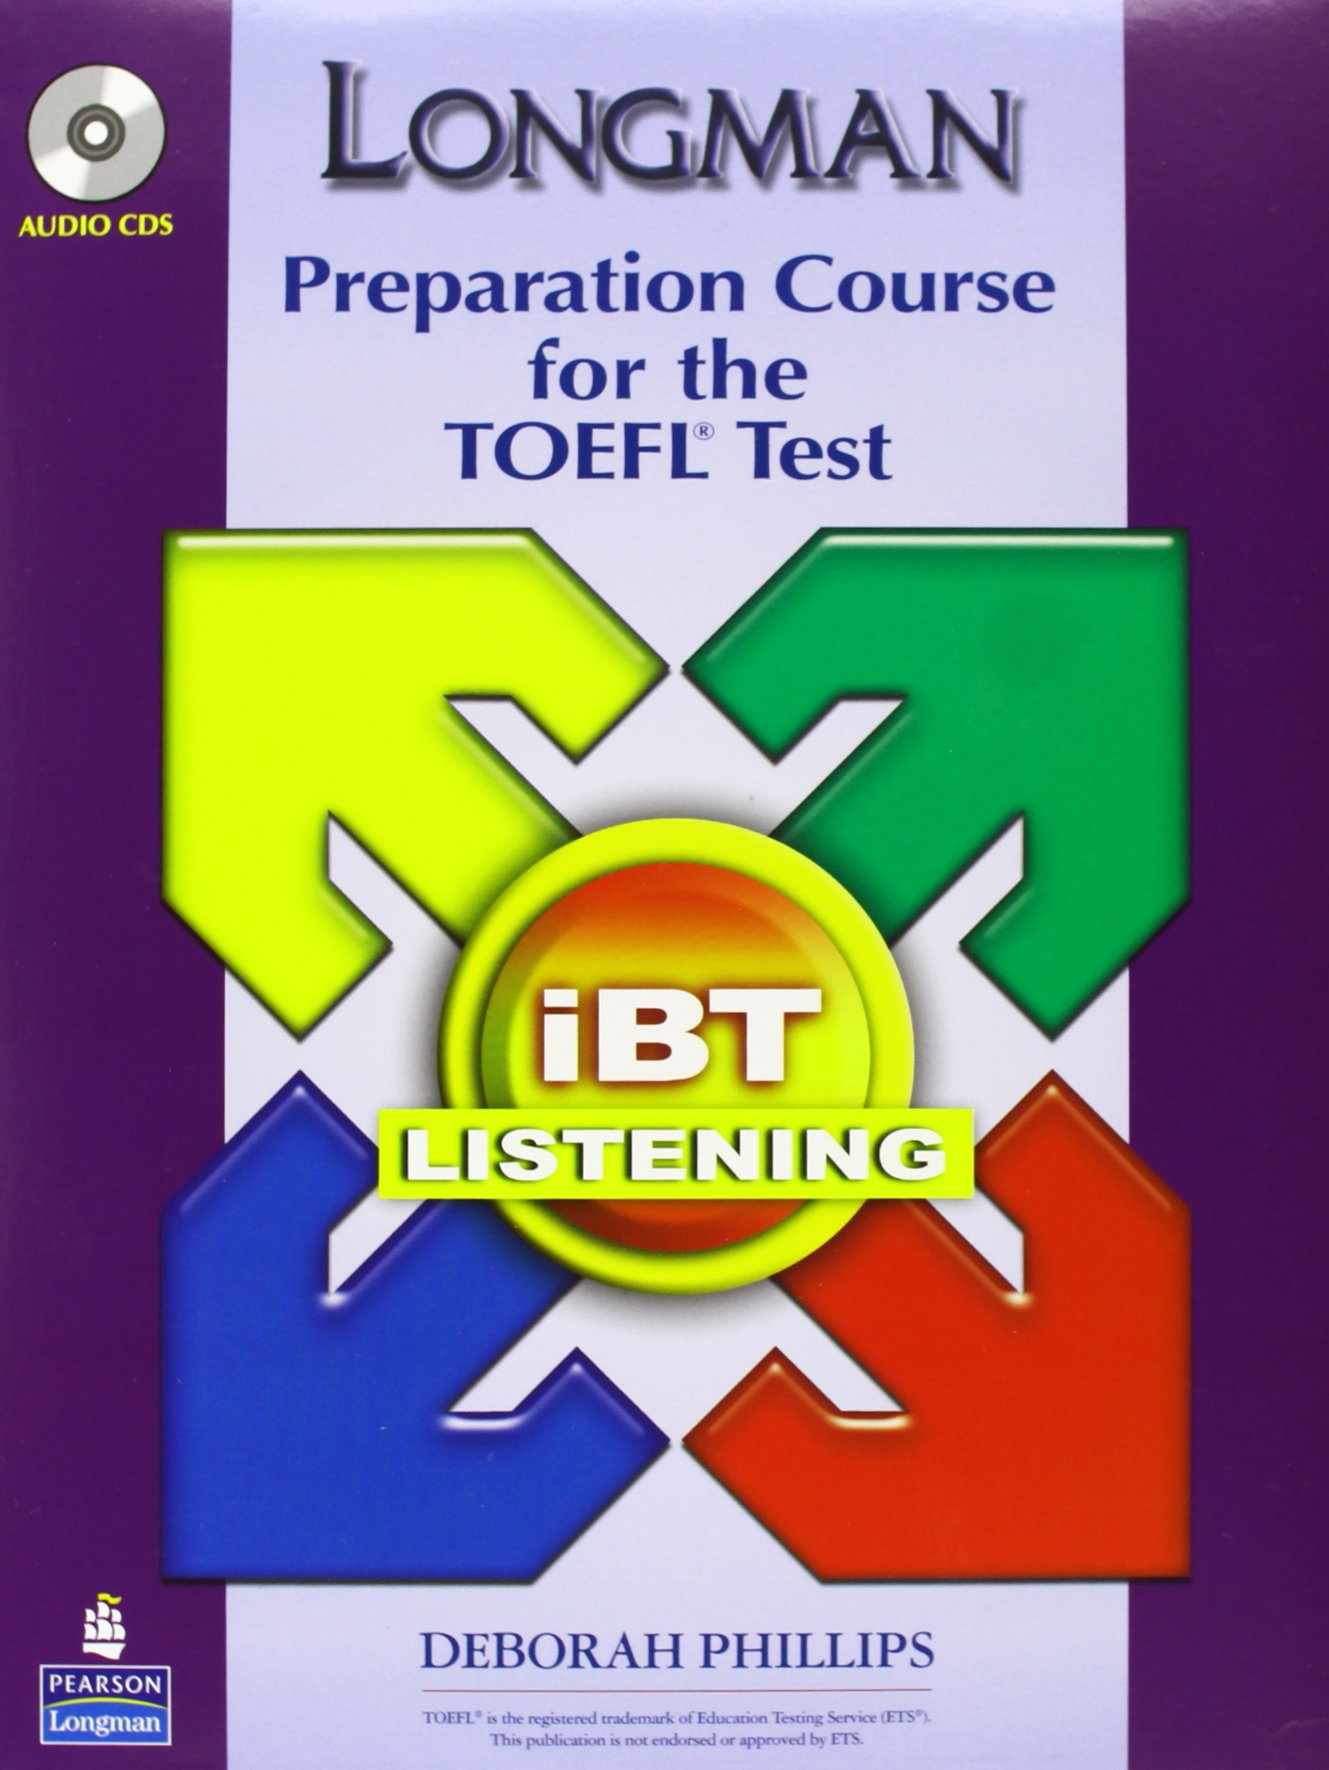 Longman Preparation Course For The TOEFL IbT  Listening Audio CDs